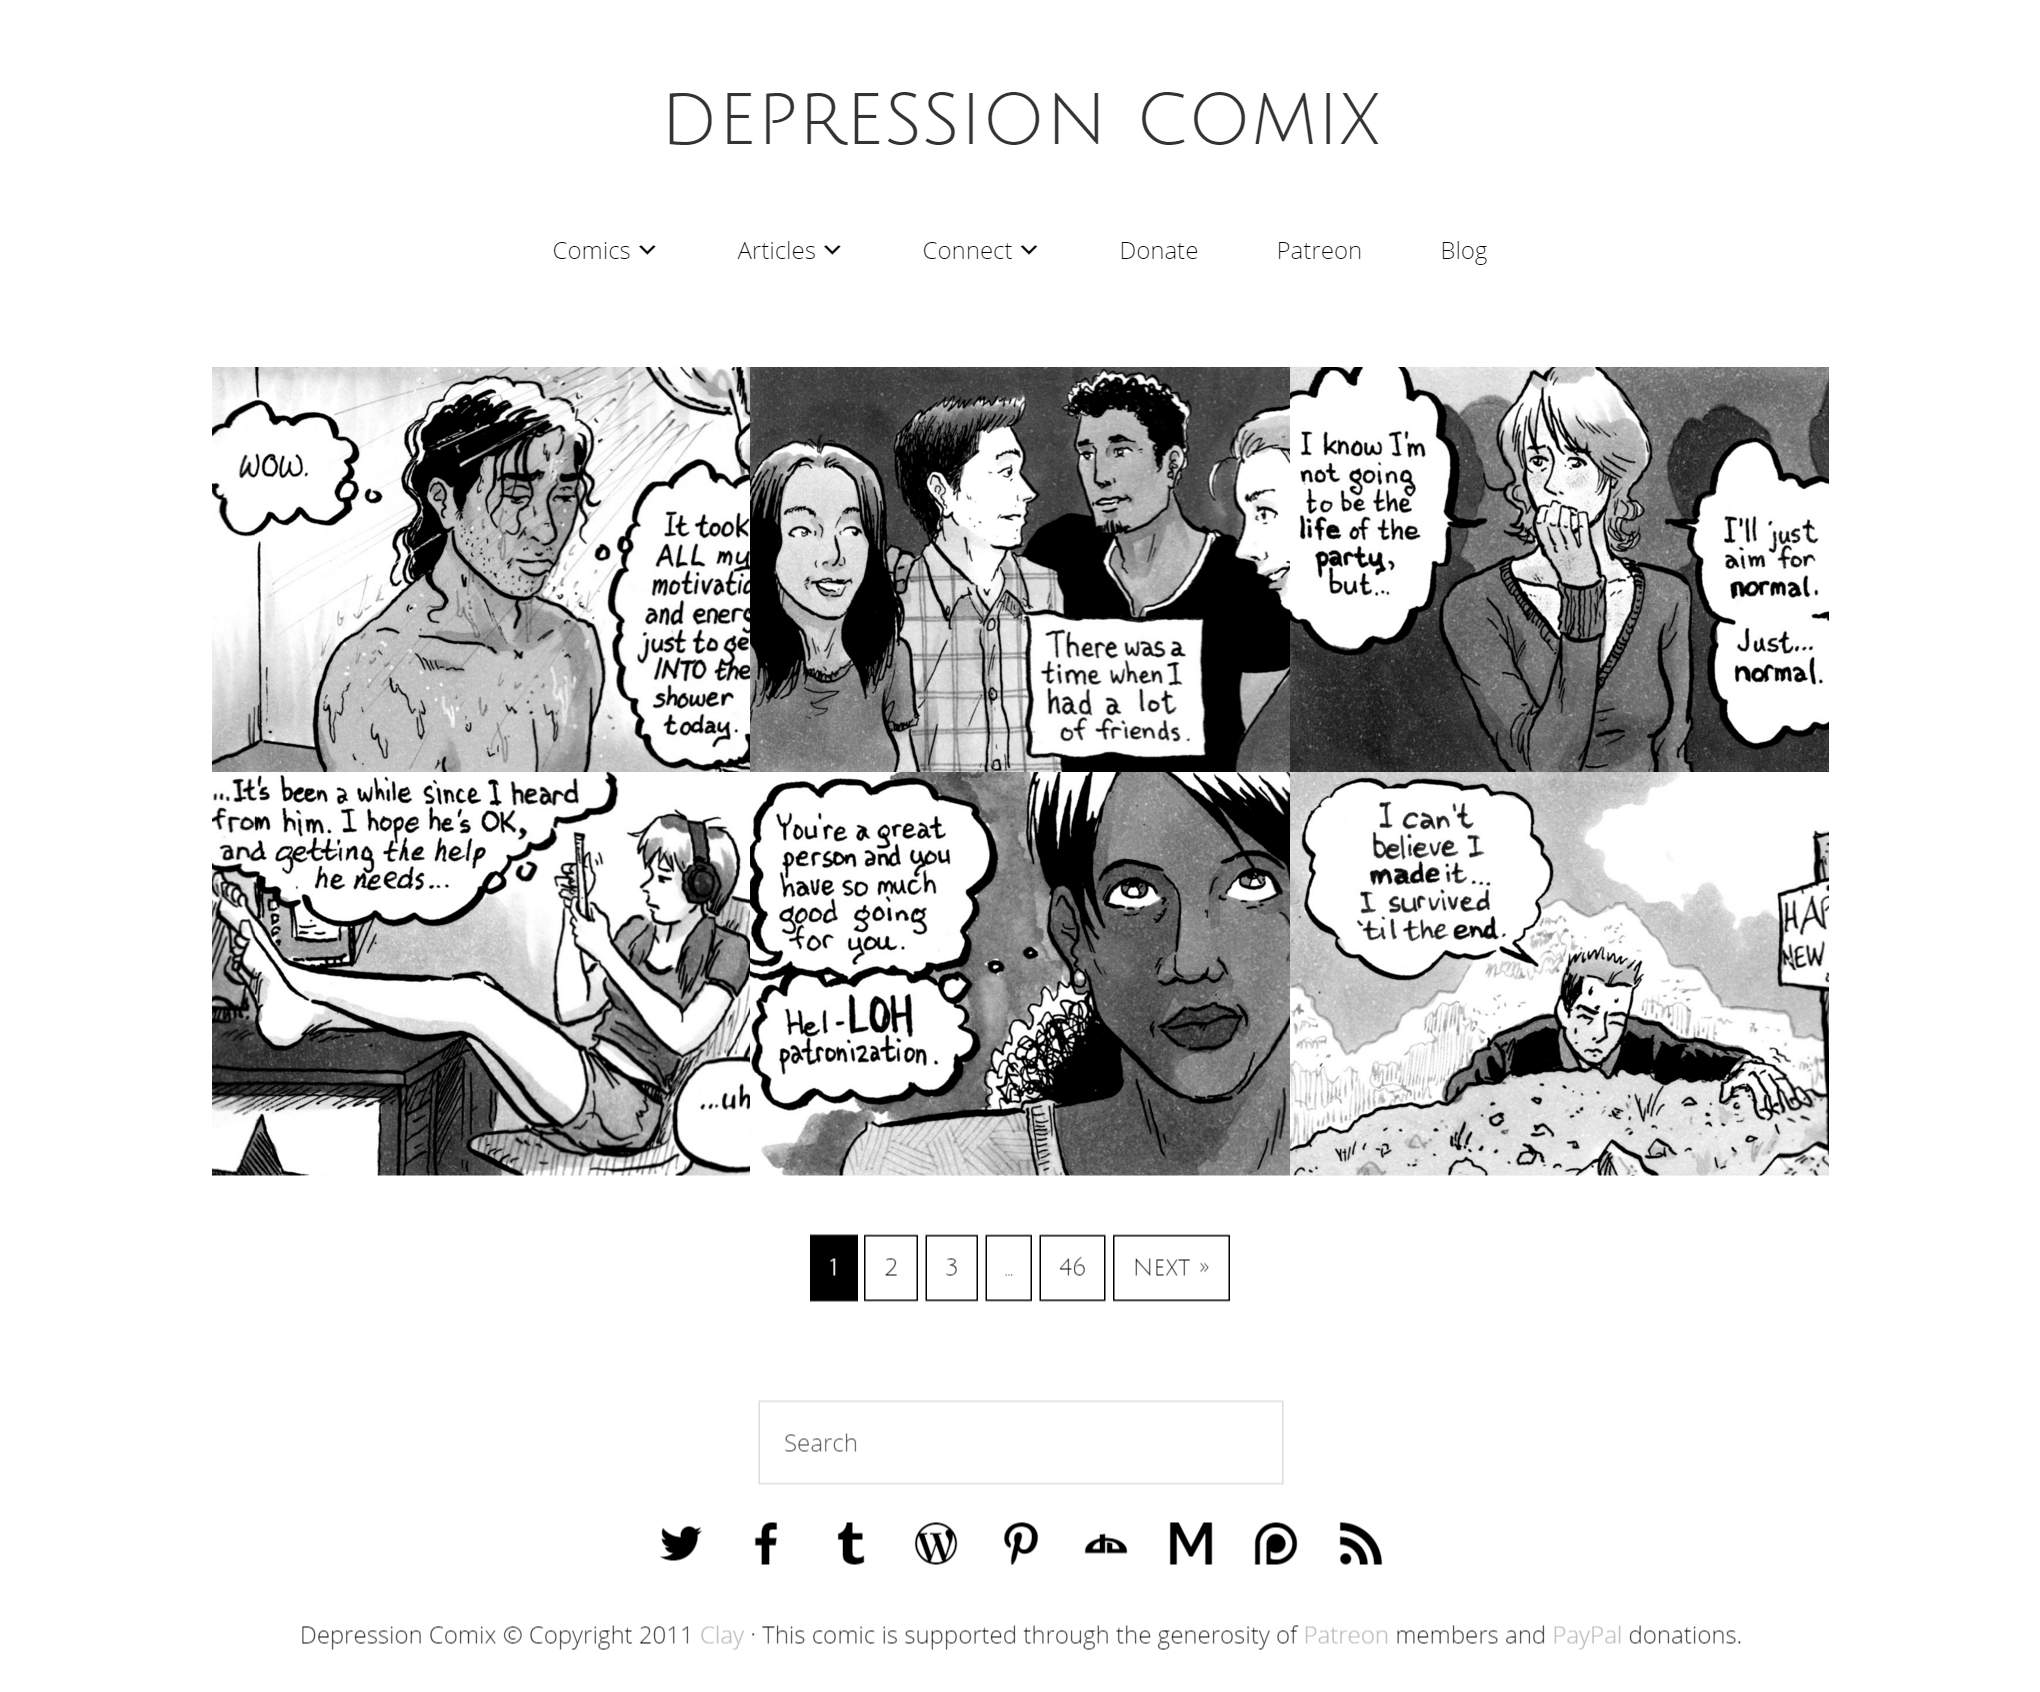 screencapture-www-depressioncomix-com-1455252526852